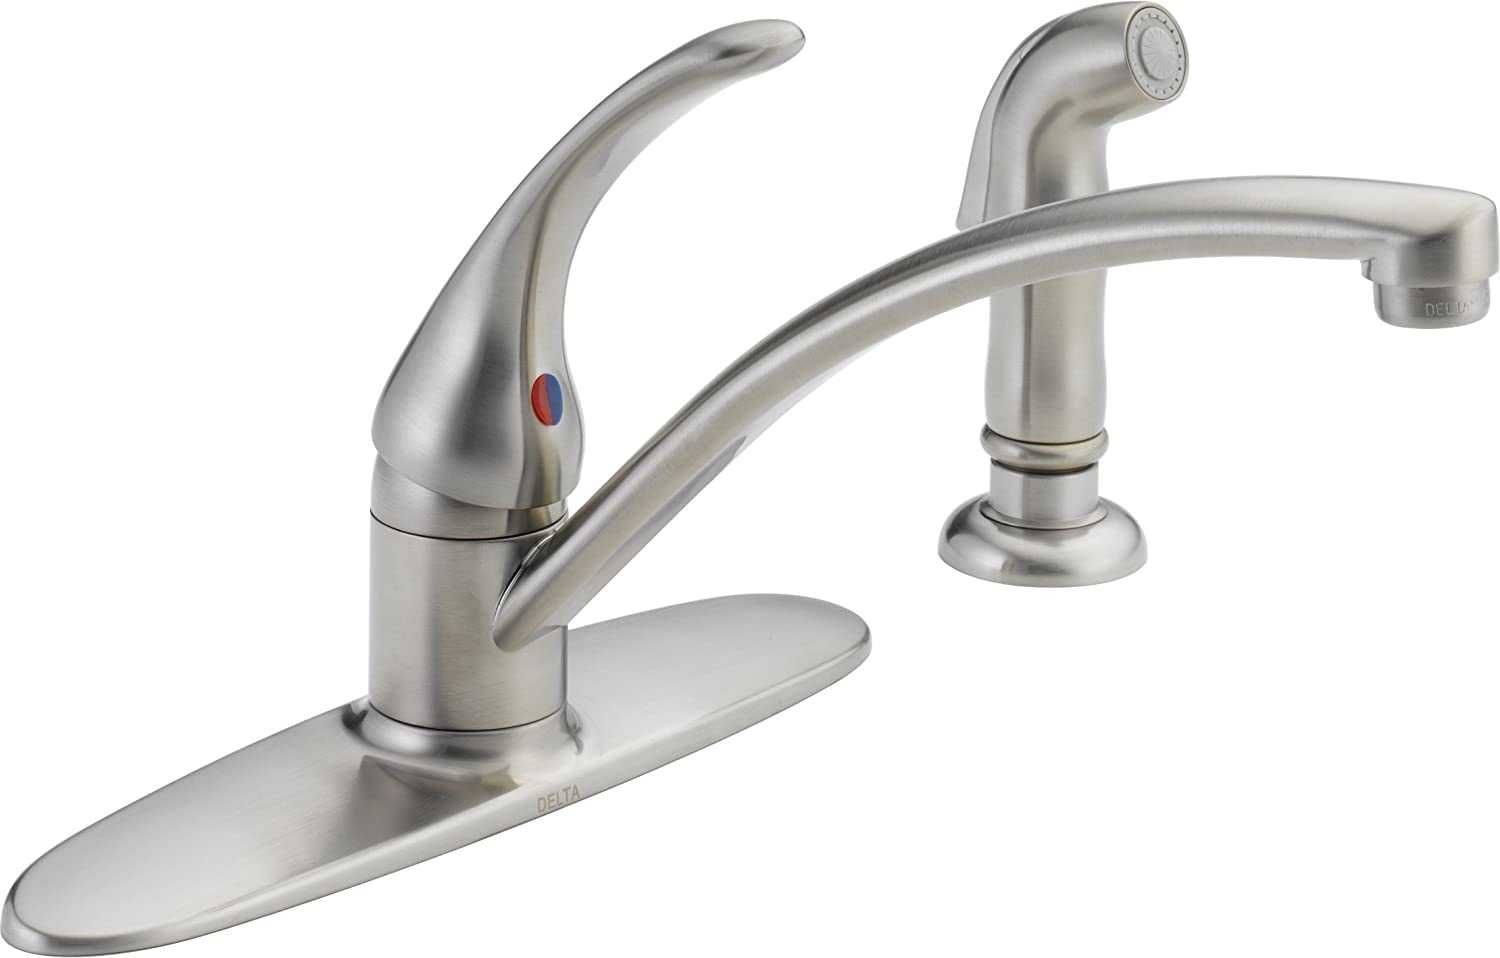 Delta b4410lf ss foundations single handle kitchen faucet stainless touch on kitchen sink faucets amazon com